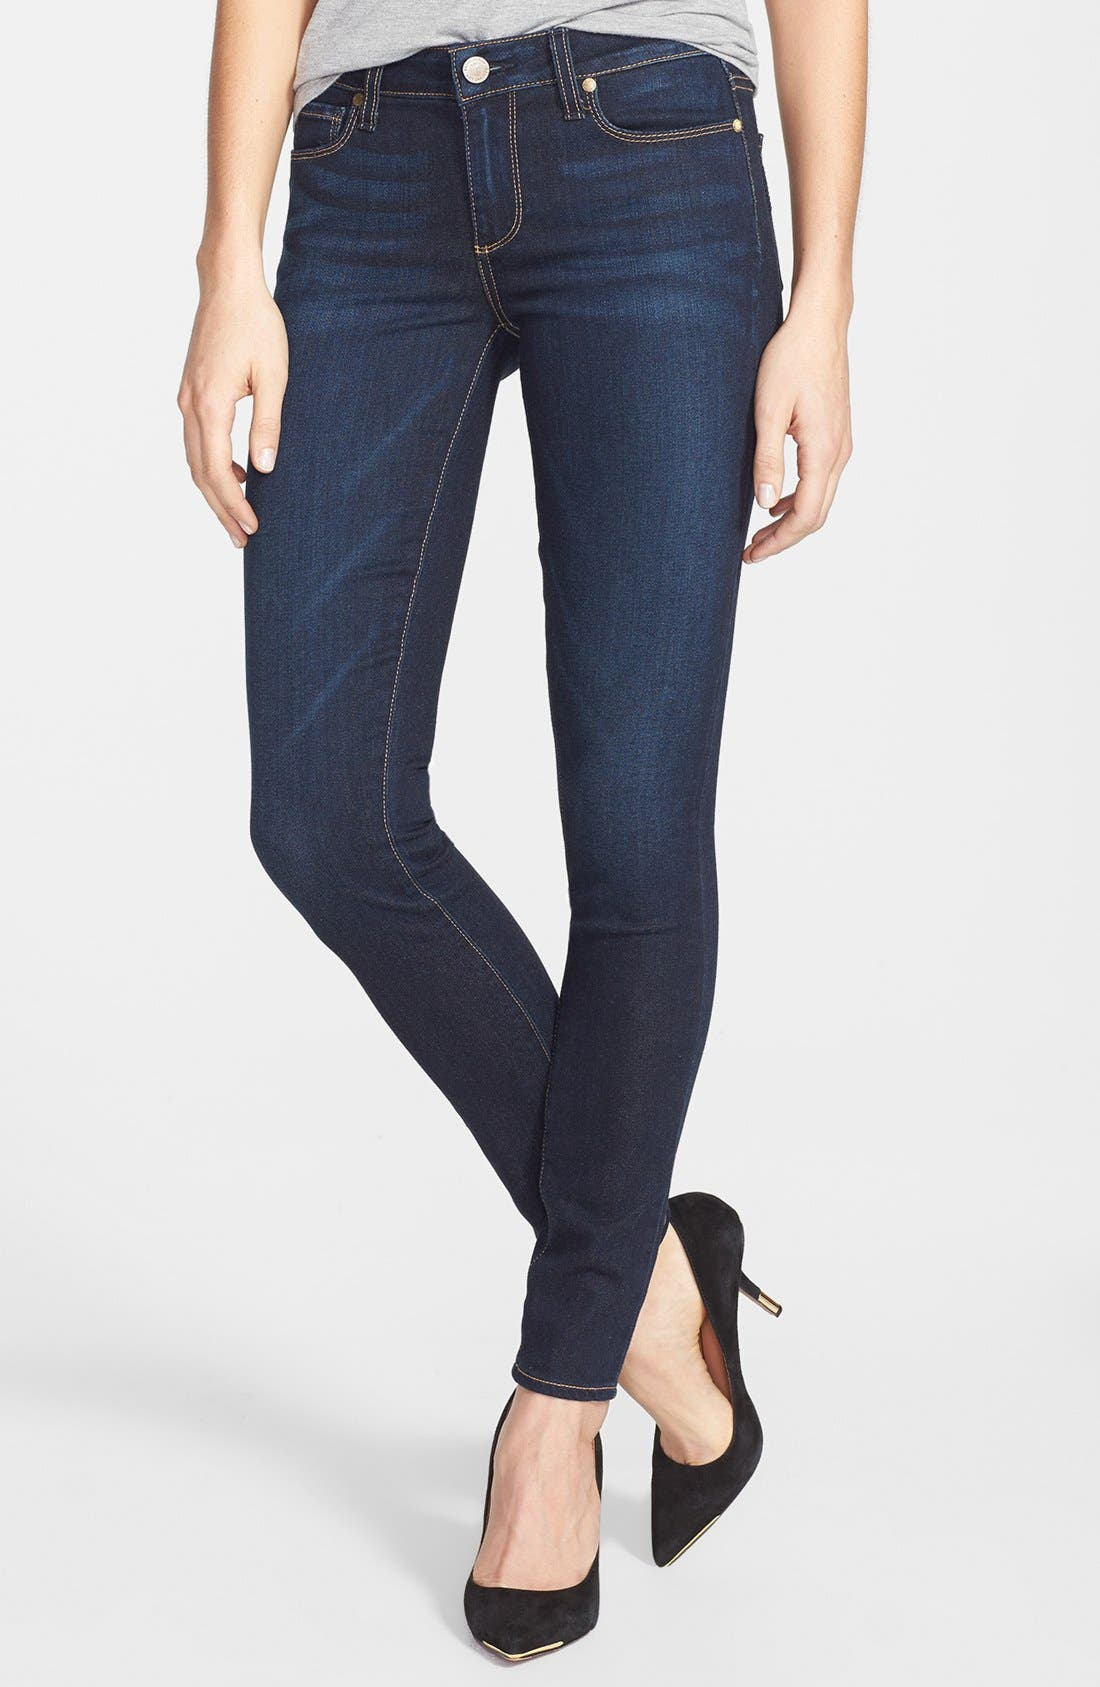 Alternate Image 1 Selected - Paige Denim 'Verdugo' Ultra Skinny Jeans (Surface)